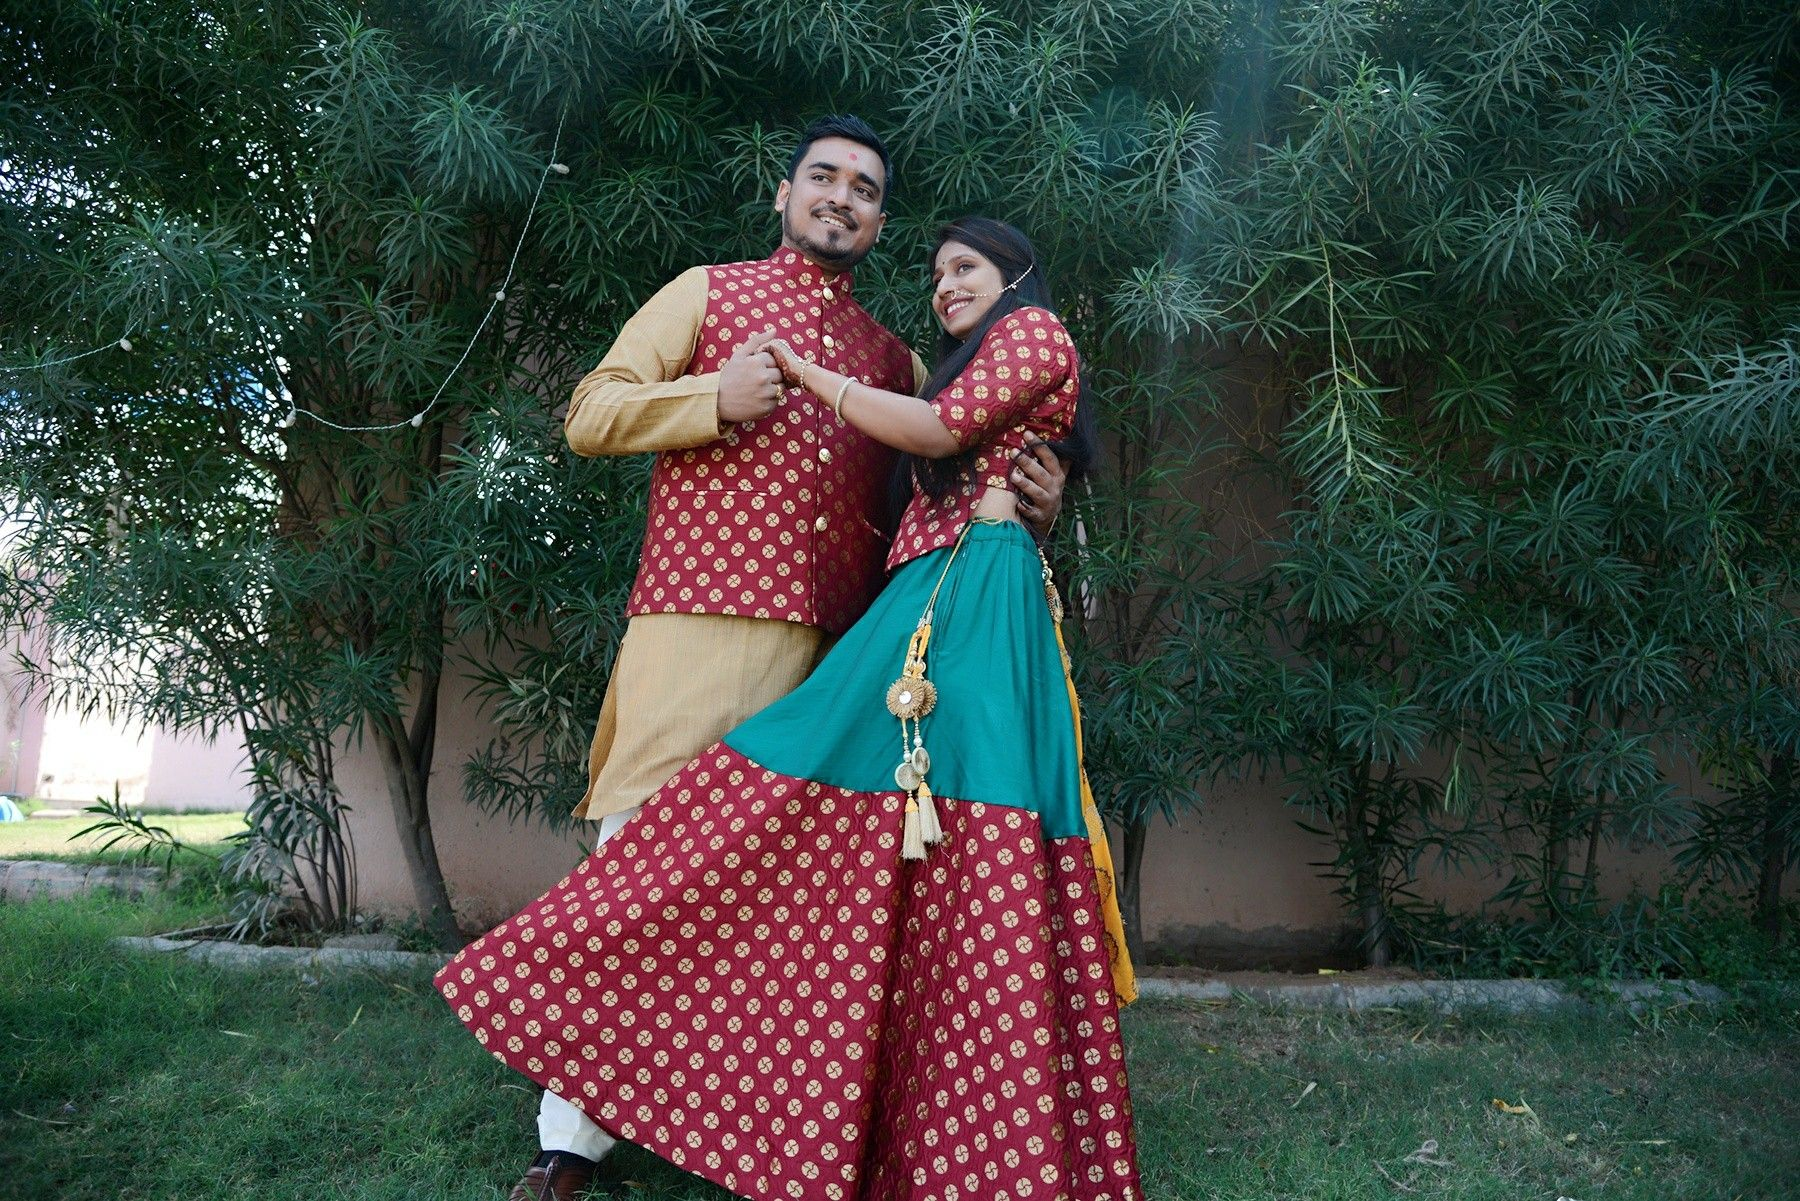 Couple wedding dressIndian weddingCouple matching